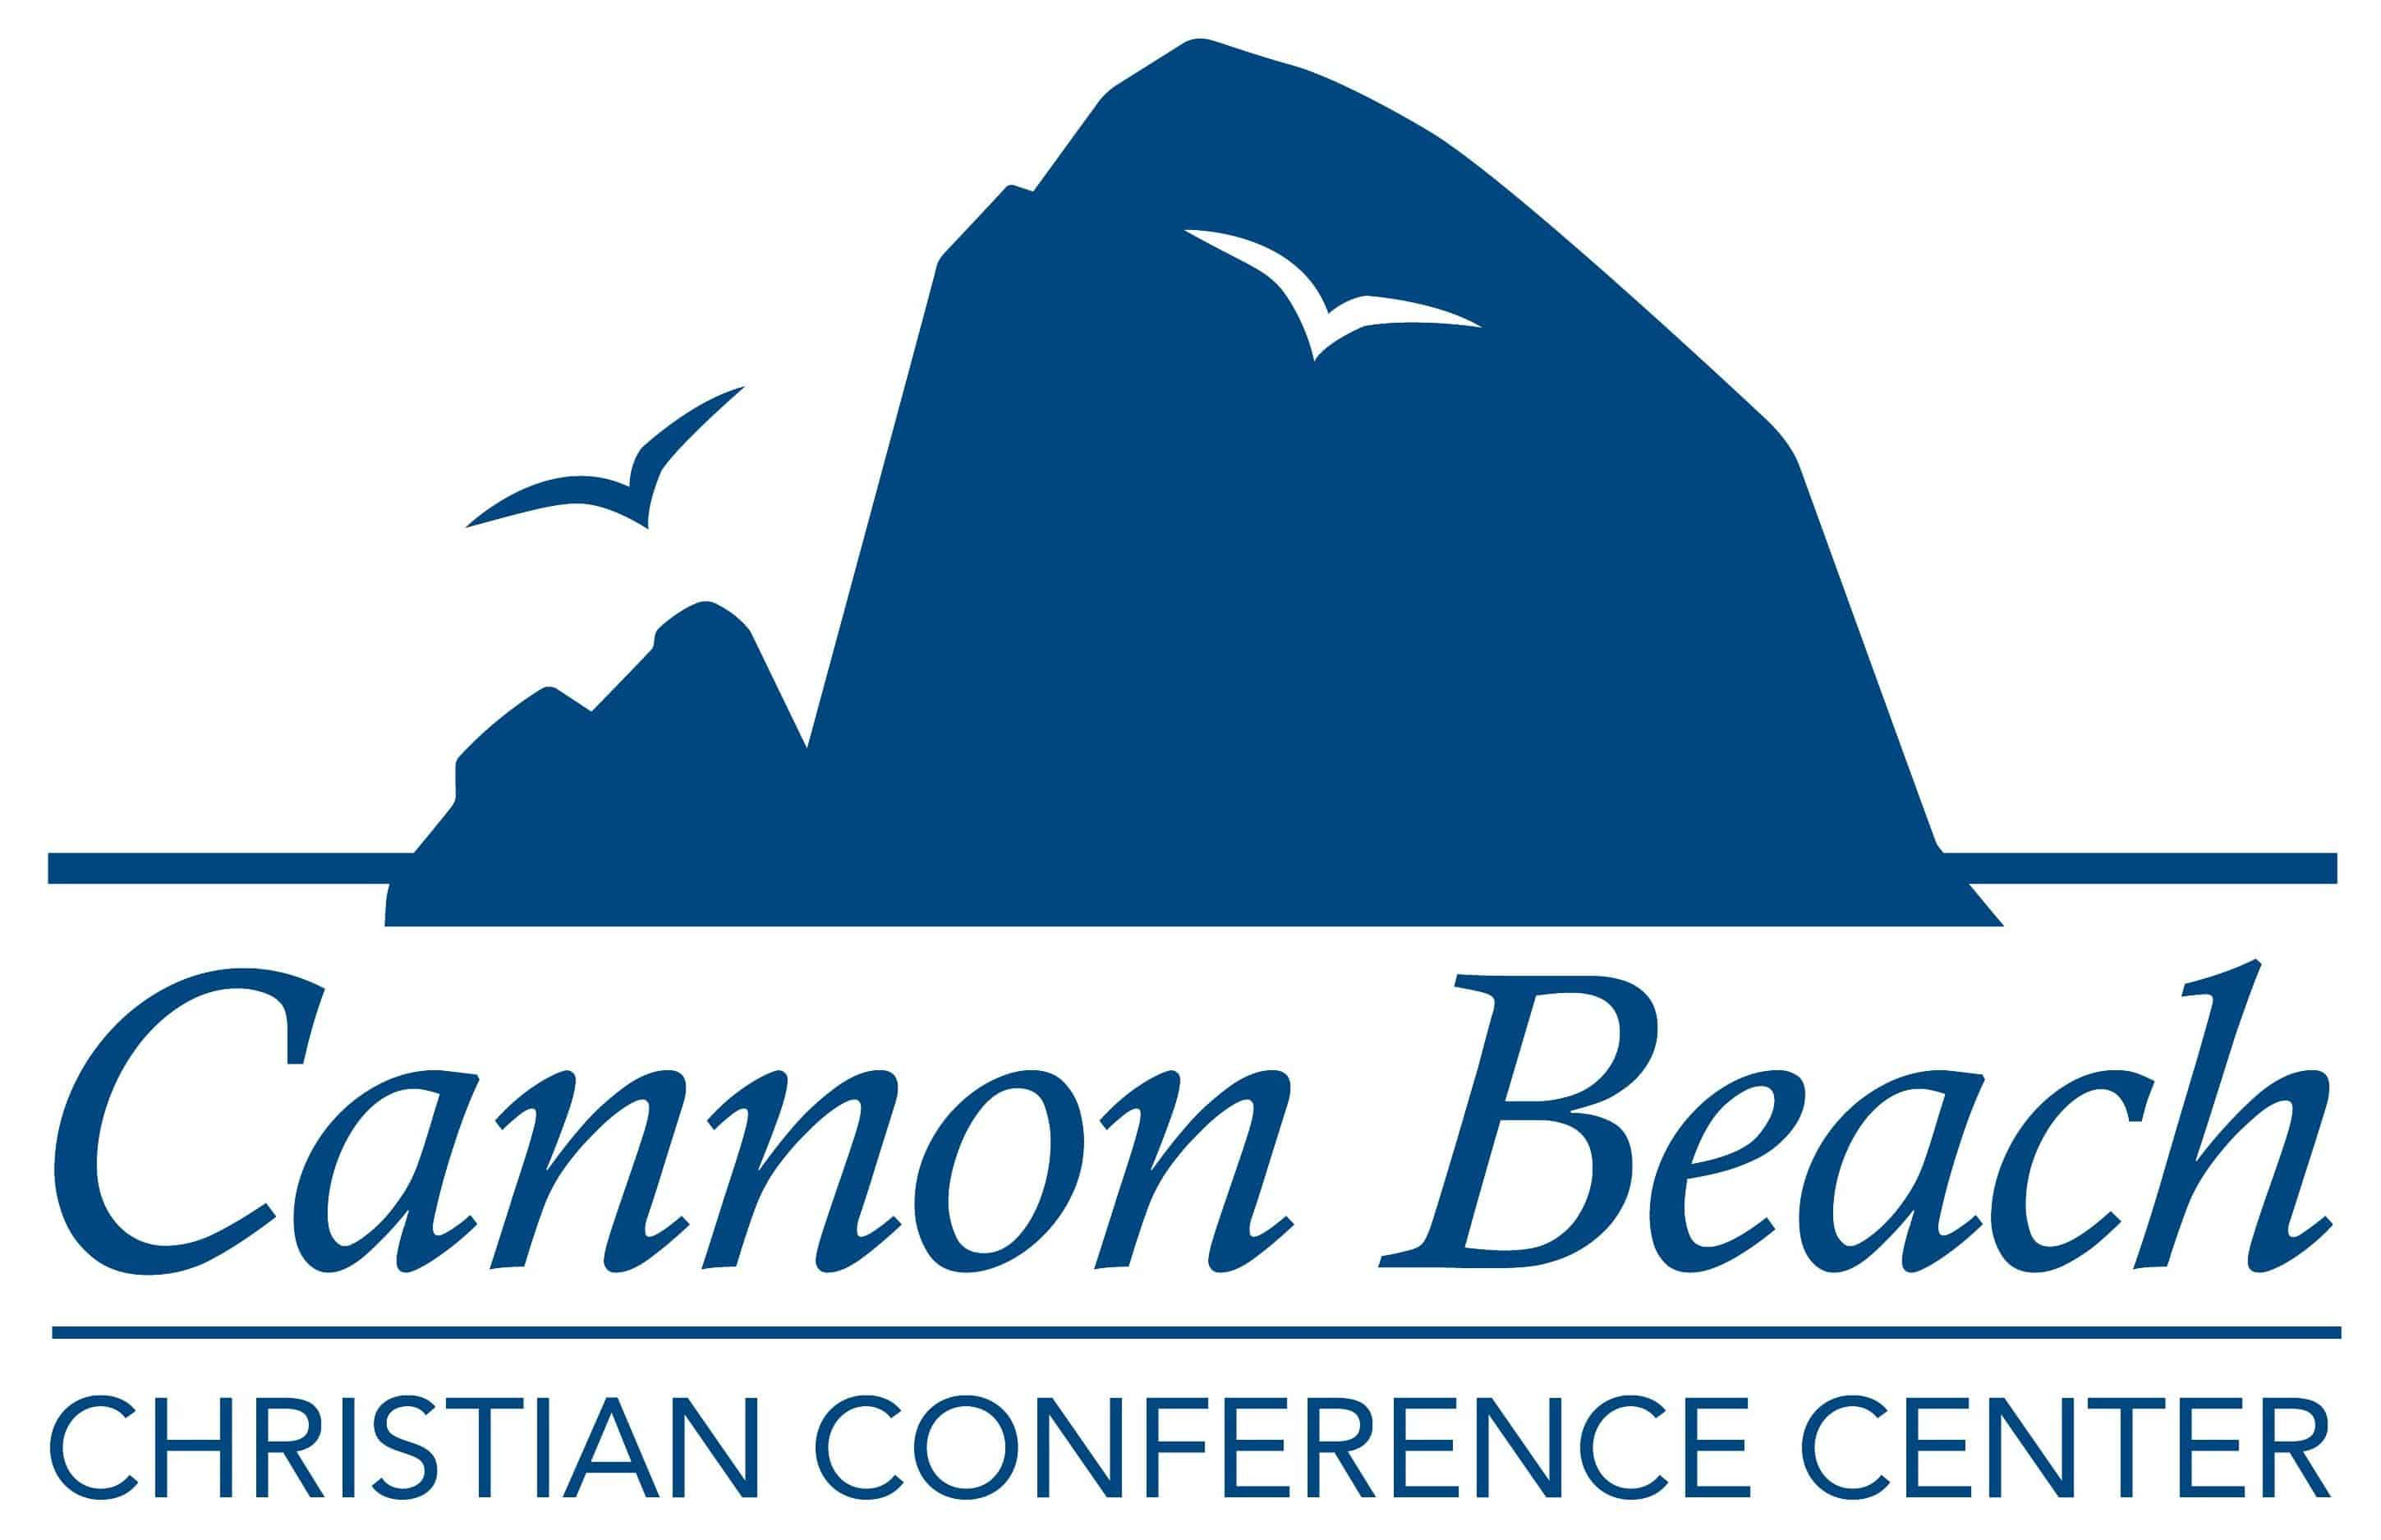 Cannon Beach Christian Conference Center